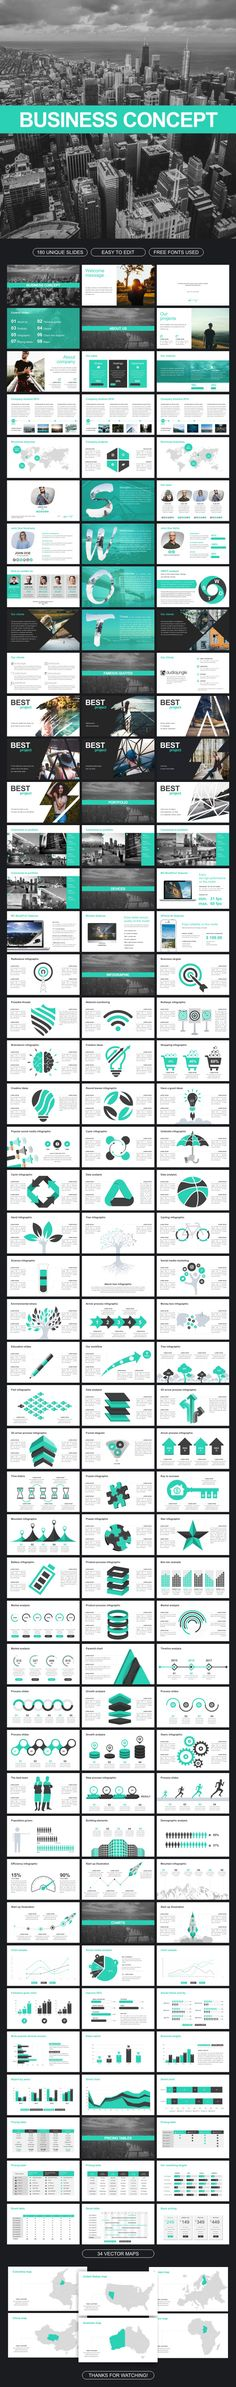 Business Concept Powerpoint - #Business #PowerPoint Templates Download here:  https://graphicriver.net/item/business-concept-powerpoint/20378394?ref=alena994